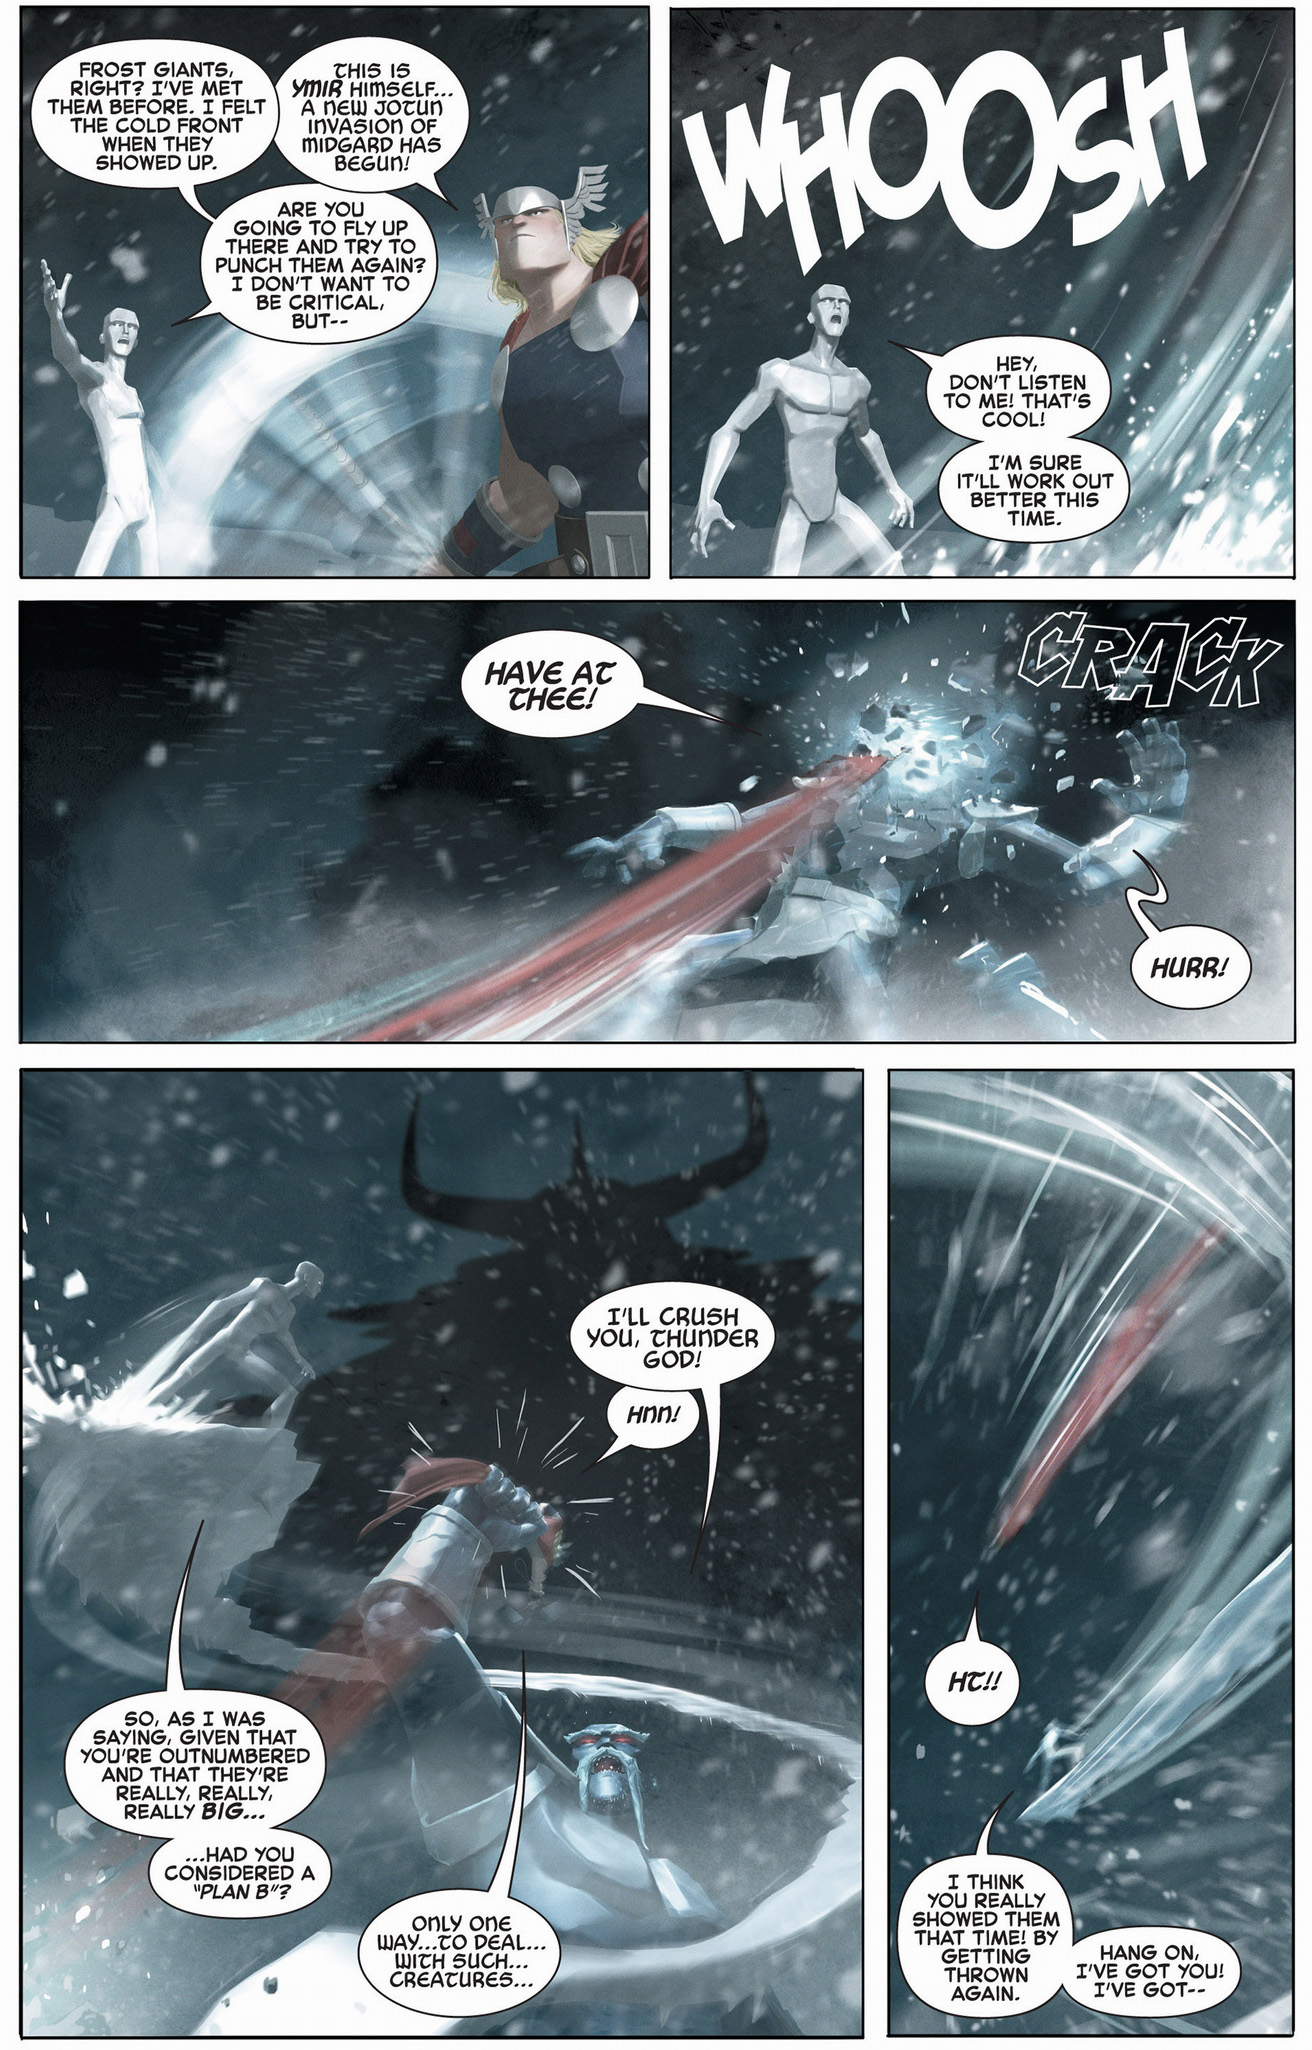 thor vs ymir and frost giants